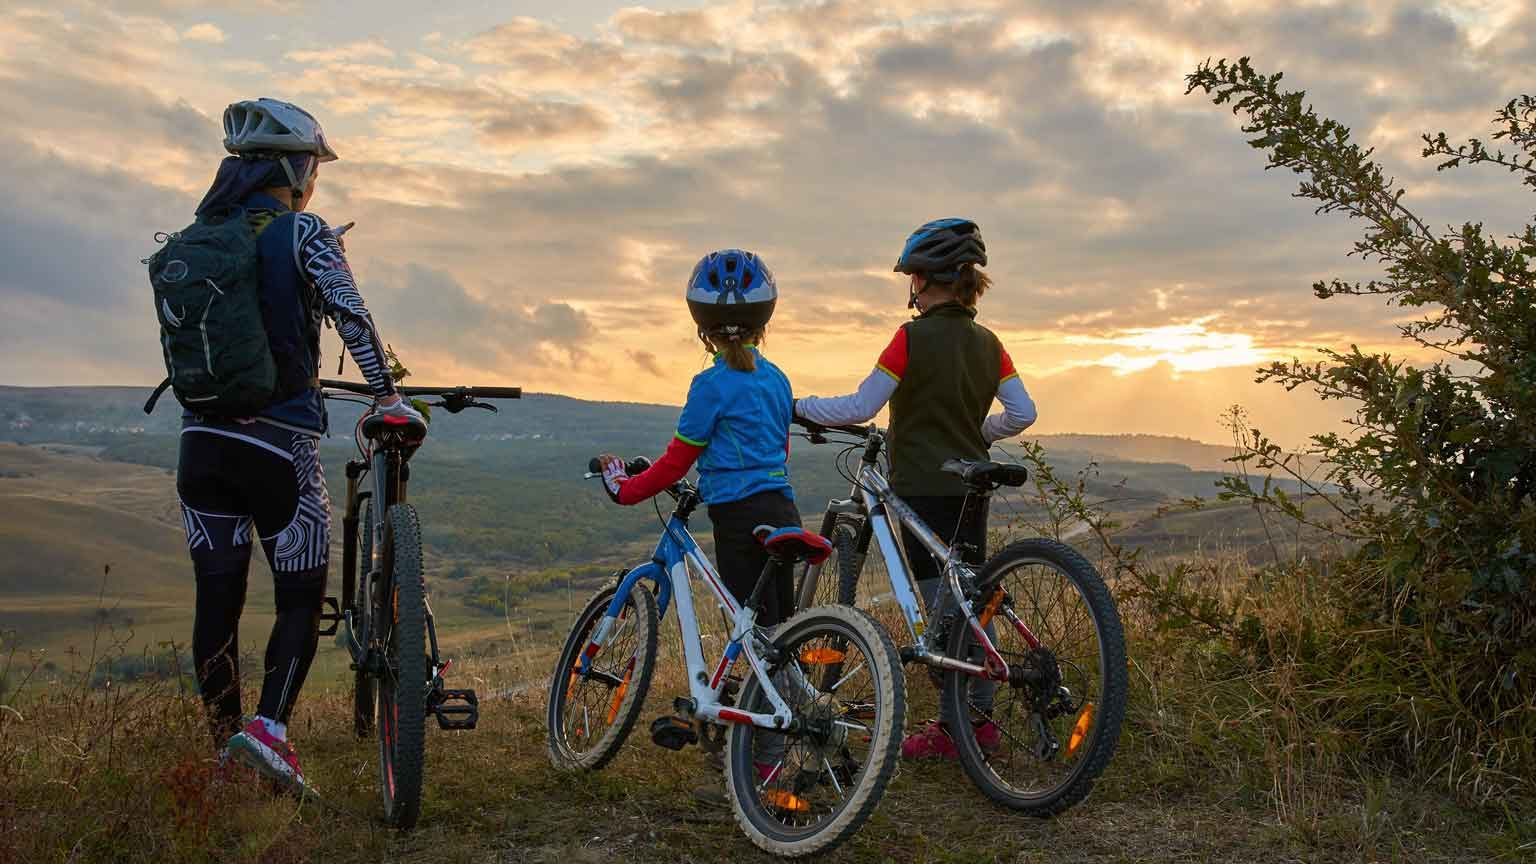 mountain bike family, outdoors have fun together on a summer afternoon sunset, cycling girls activity